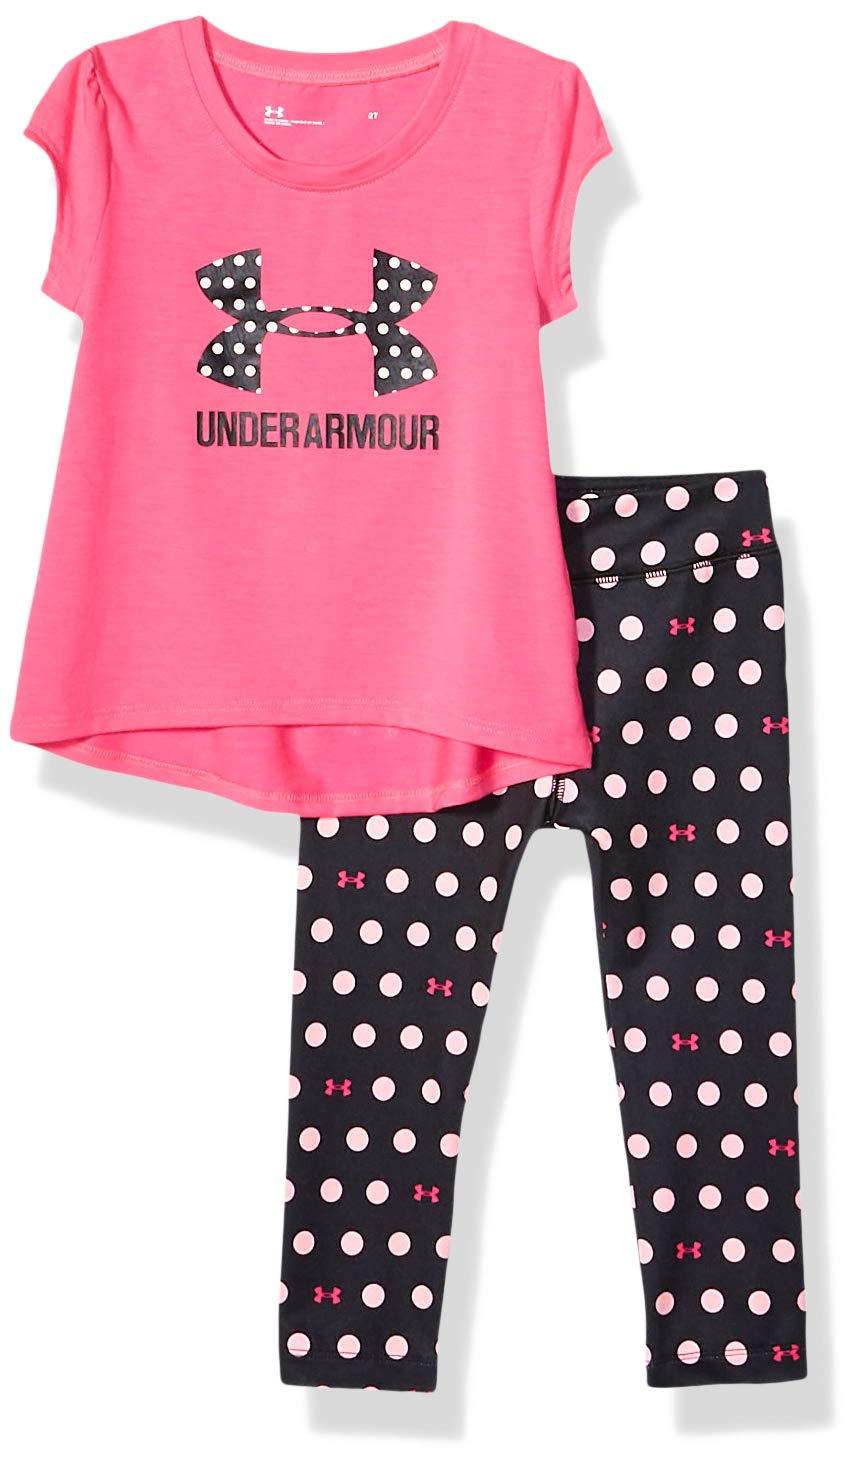 Under Armour Baby Girls' Toddler Valuable Player Tee Set, Pinkadelic F19, 2T by Under Armour